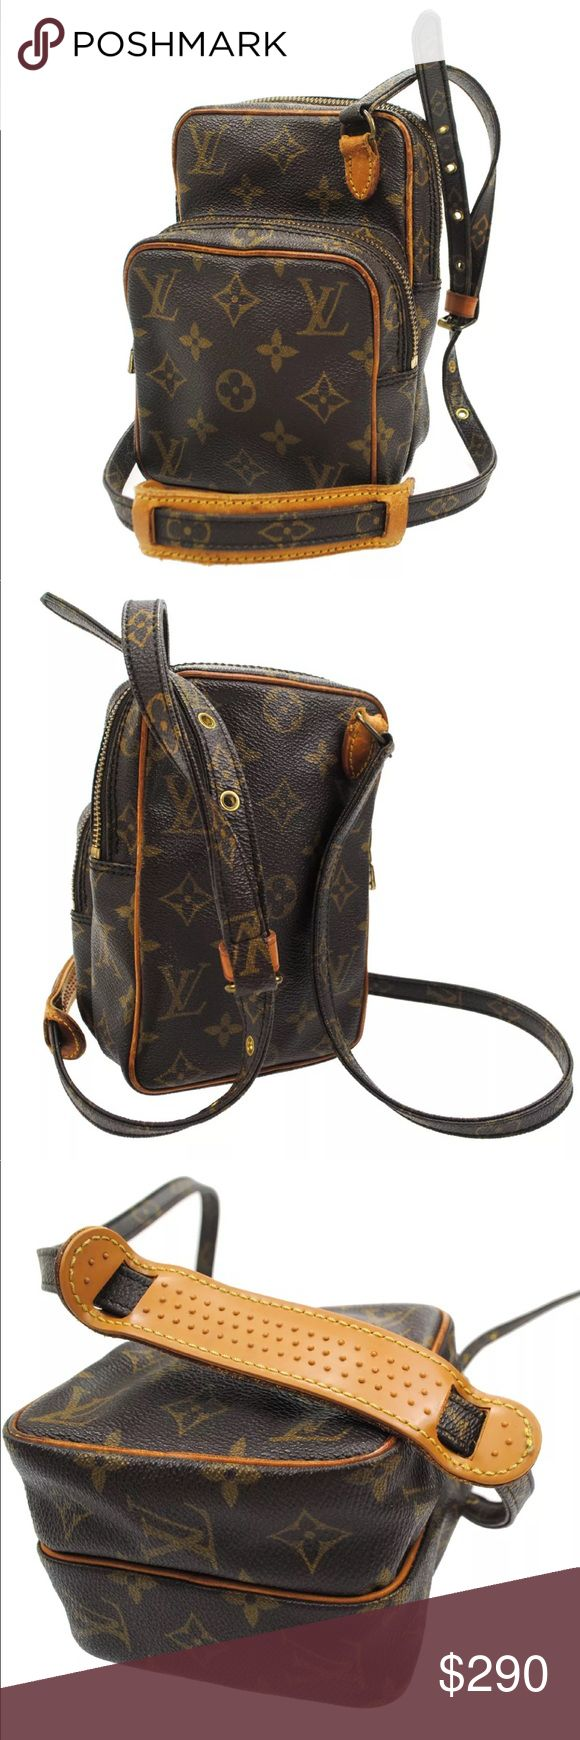 "Authentic Louis Vuitton Amazon PM Crossbody bag Brown and tan monogram coated canvas Louis Vuitton Amazon bag with brass hardware, single zip pocket at exterior. single adjustable shoulder strap, brown leather lining, single pocket at interior wall and zip closure at top. Date code reads 883TH. hardware tarnished, leather aging, scuffs inside. Made from the Super durable vintage canvas that we all love! 7"" by 5"". Louis Vuitton Bags Crossbody Bags"